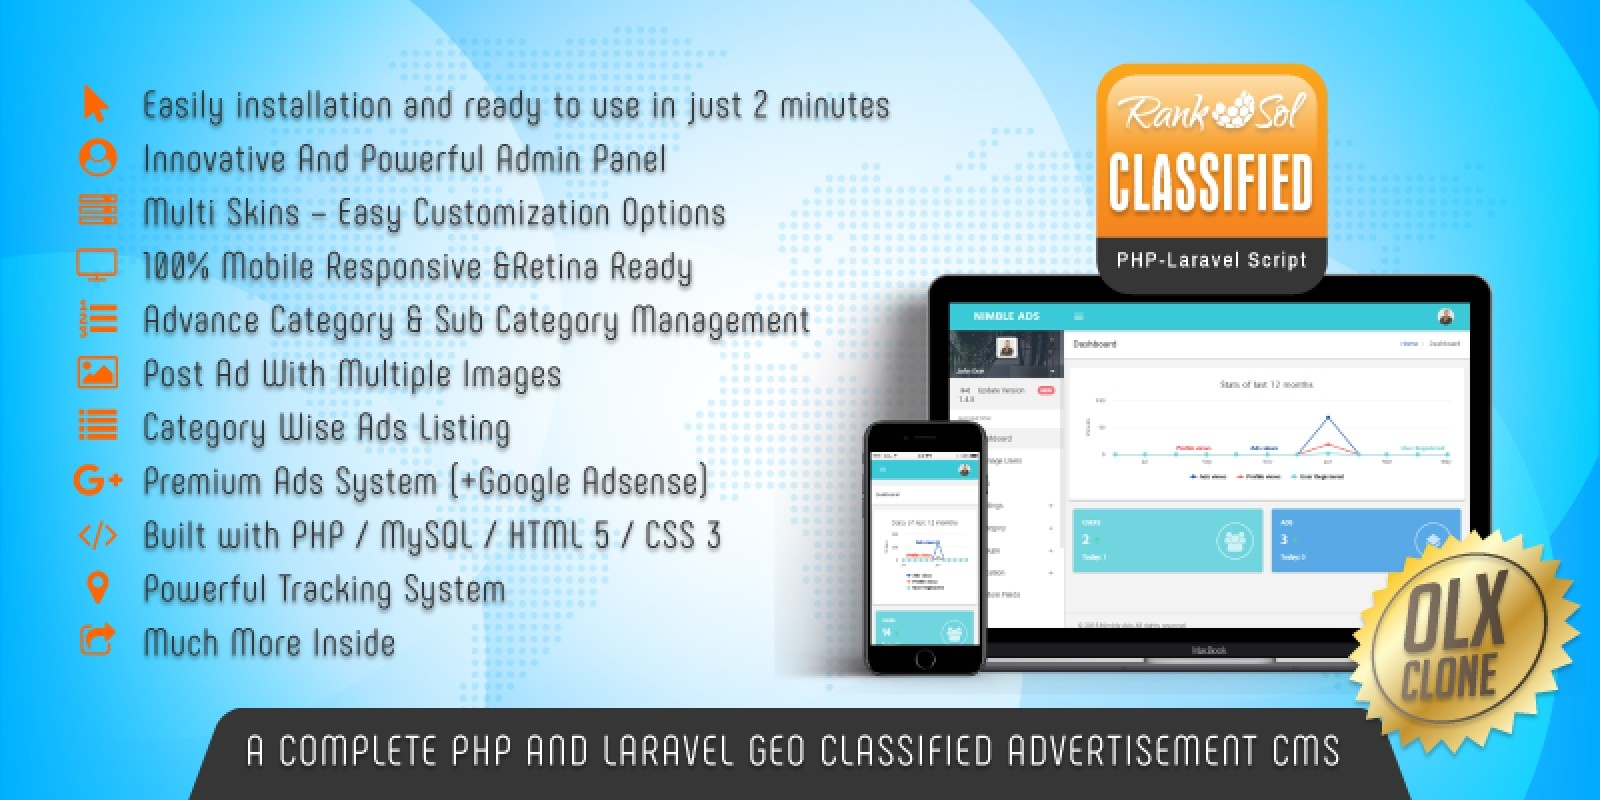 Ranksol Classified Ads Script PHP And Laravel CMS